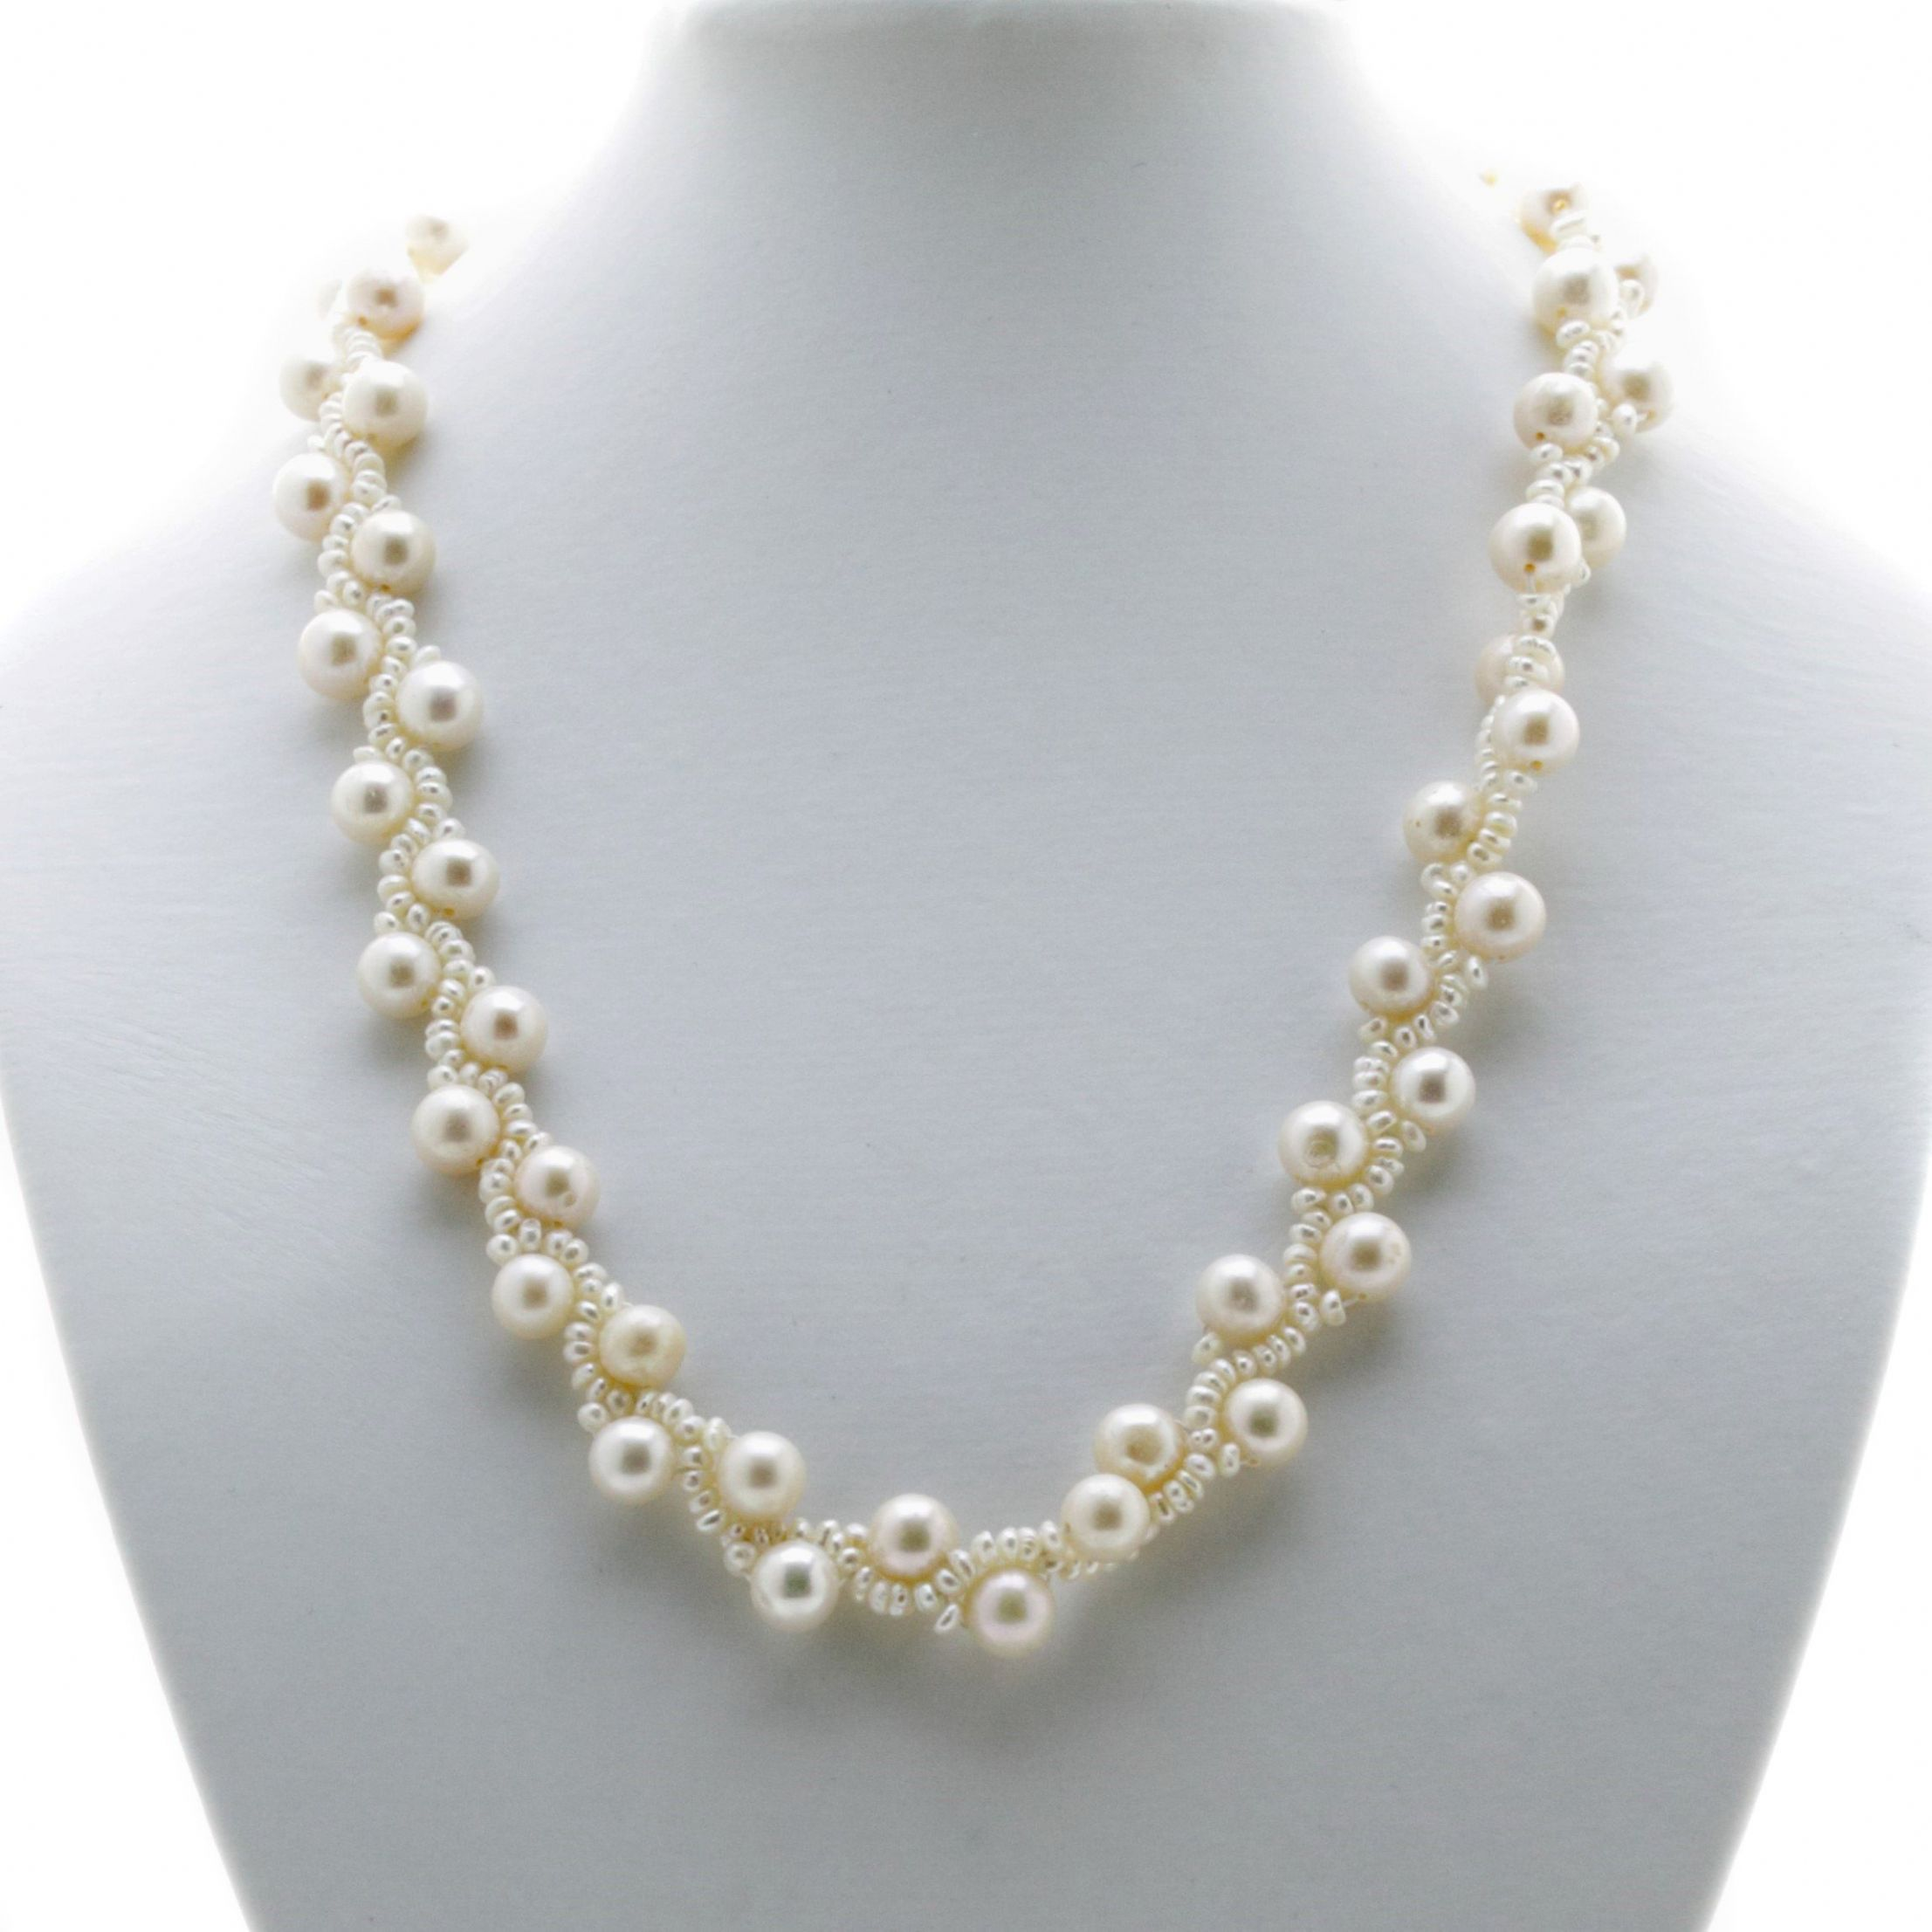 glass camellia seoul beaded necklace flower chanel charm gold at v jewelry gripoix pearl cc id org new necklaces pink